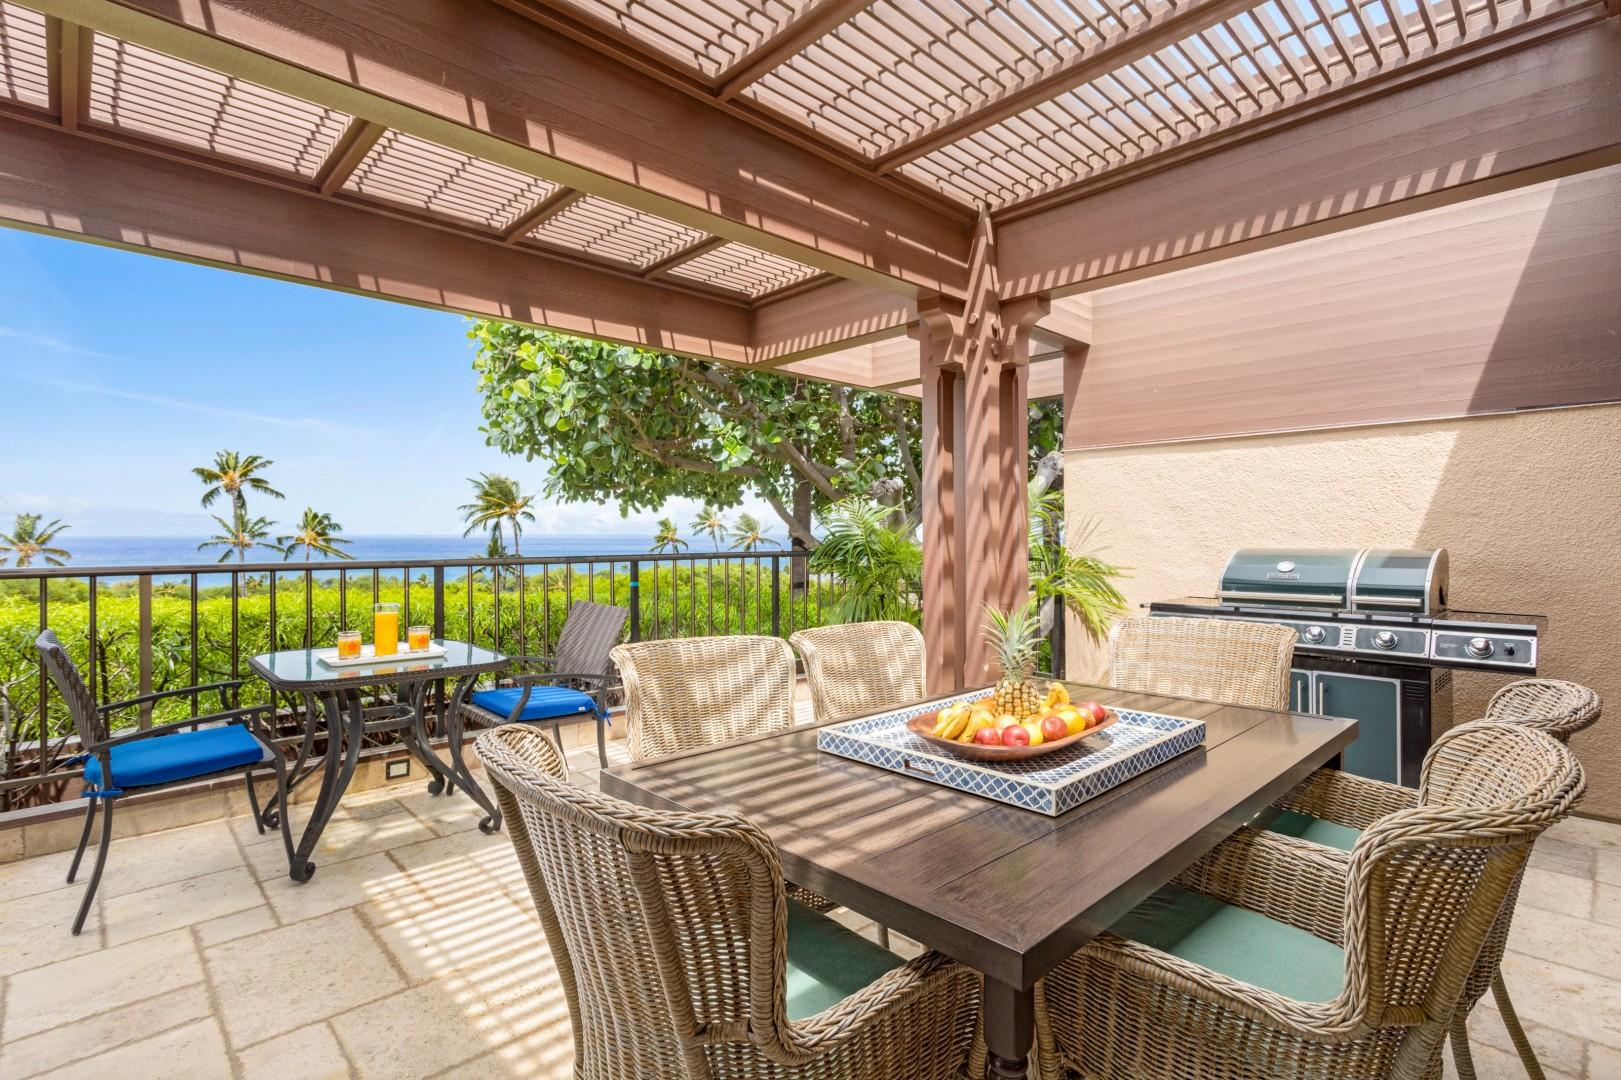 Upper lanai off second bedroom, with outdoor dining seating and barbecue grill.